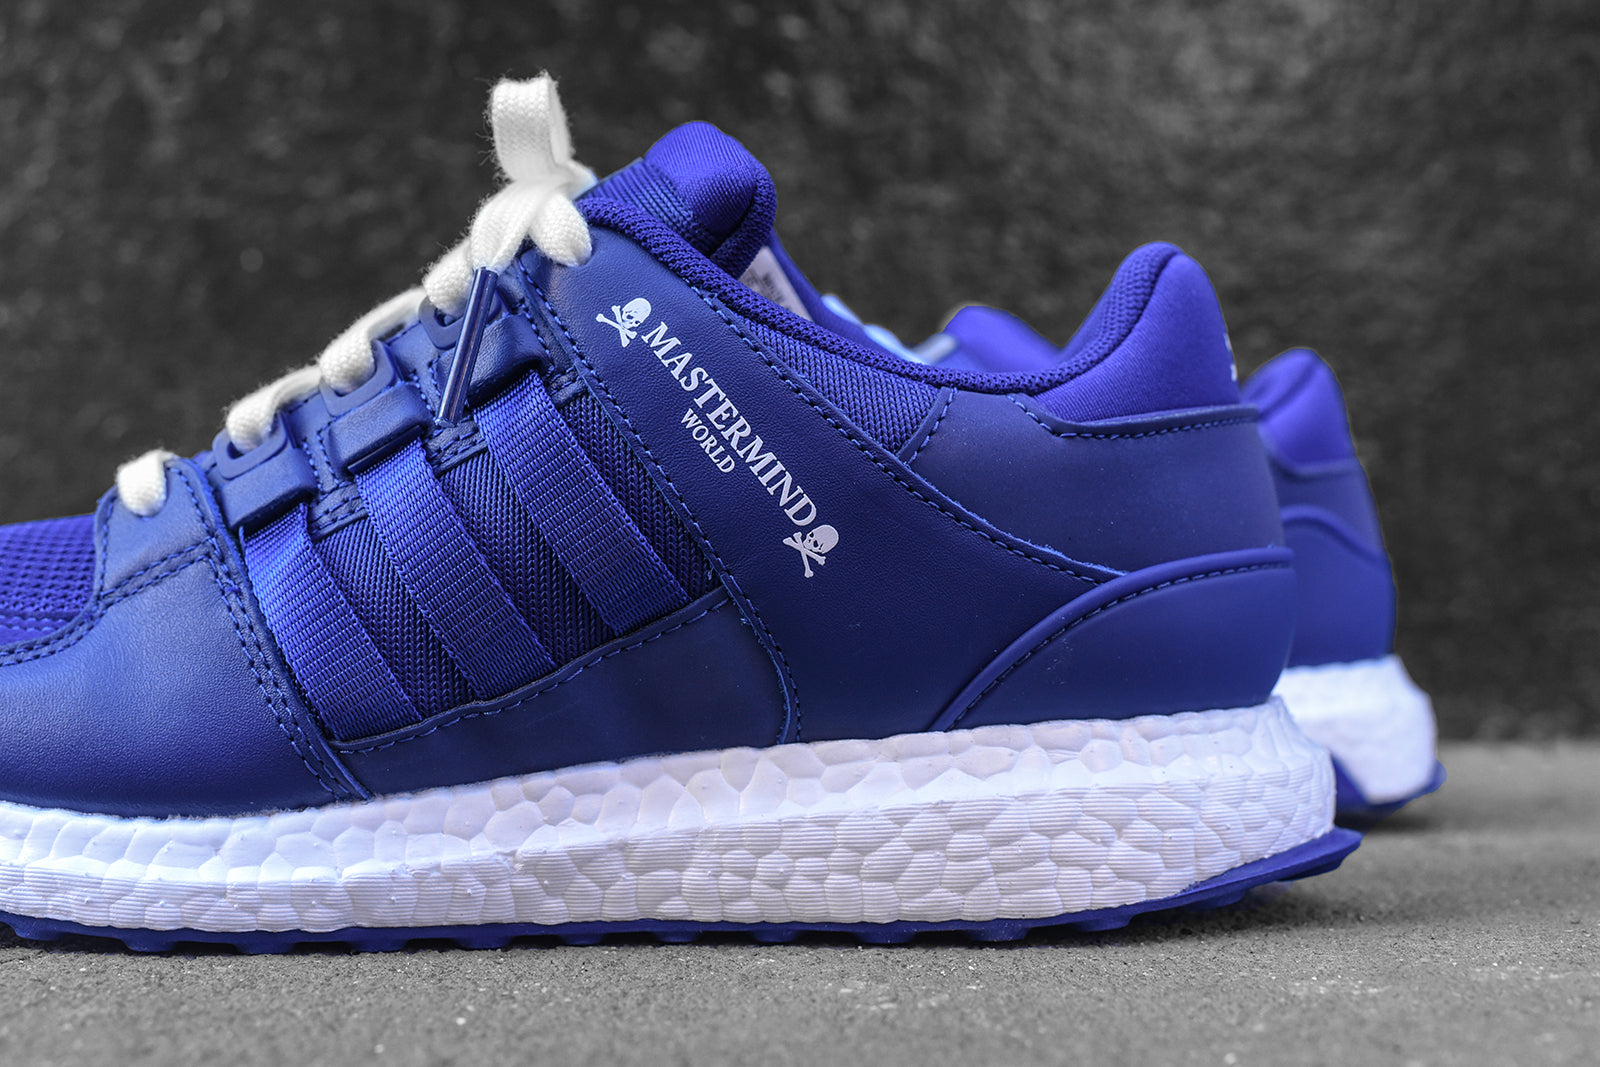 buy popular 8c559 f8778 adidas Originals x Mastermind World EQT Pack – Kith